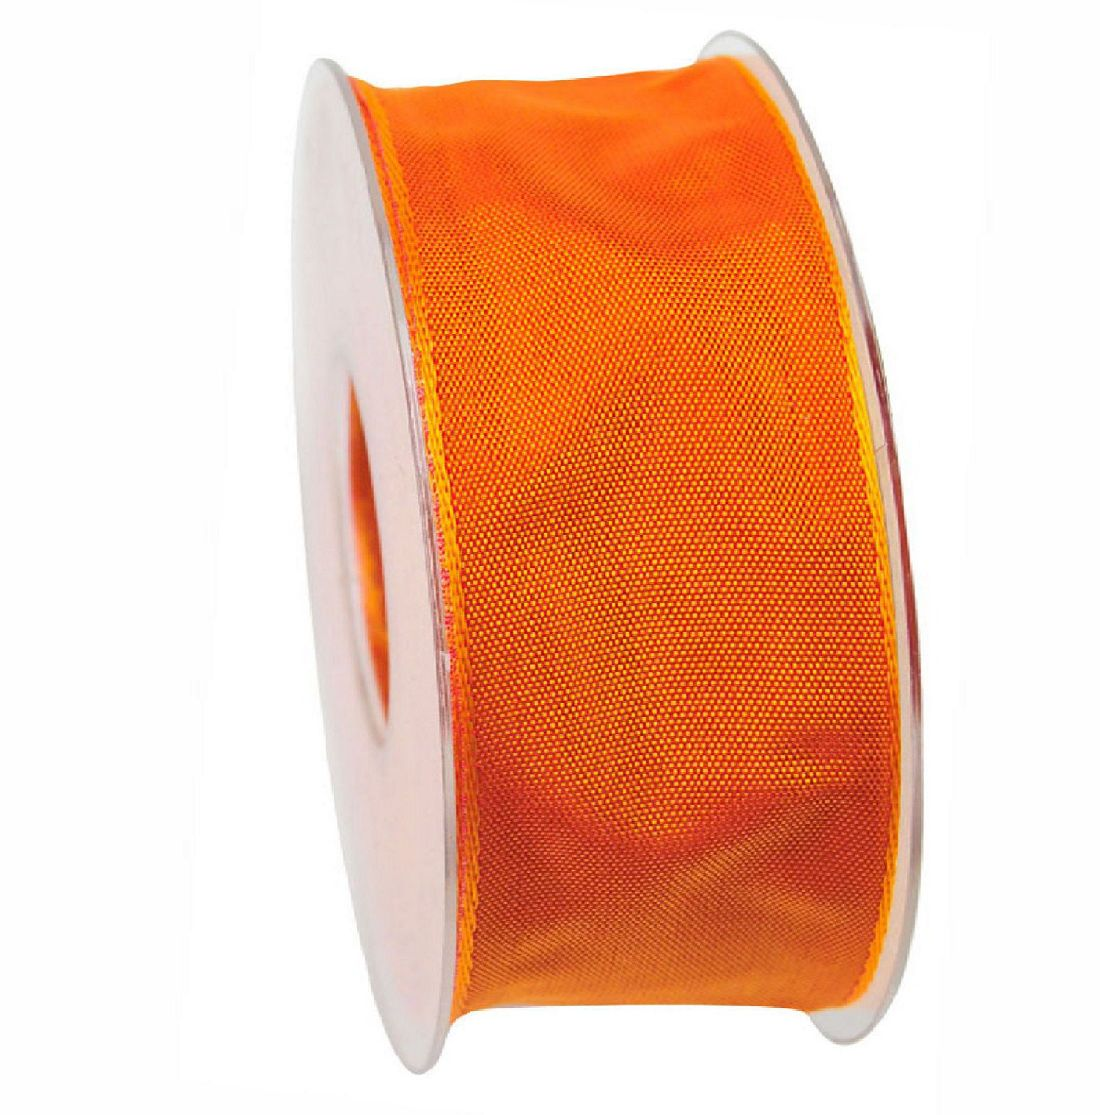 Drahtkantenband ORANGE 40 60mm 25m